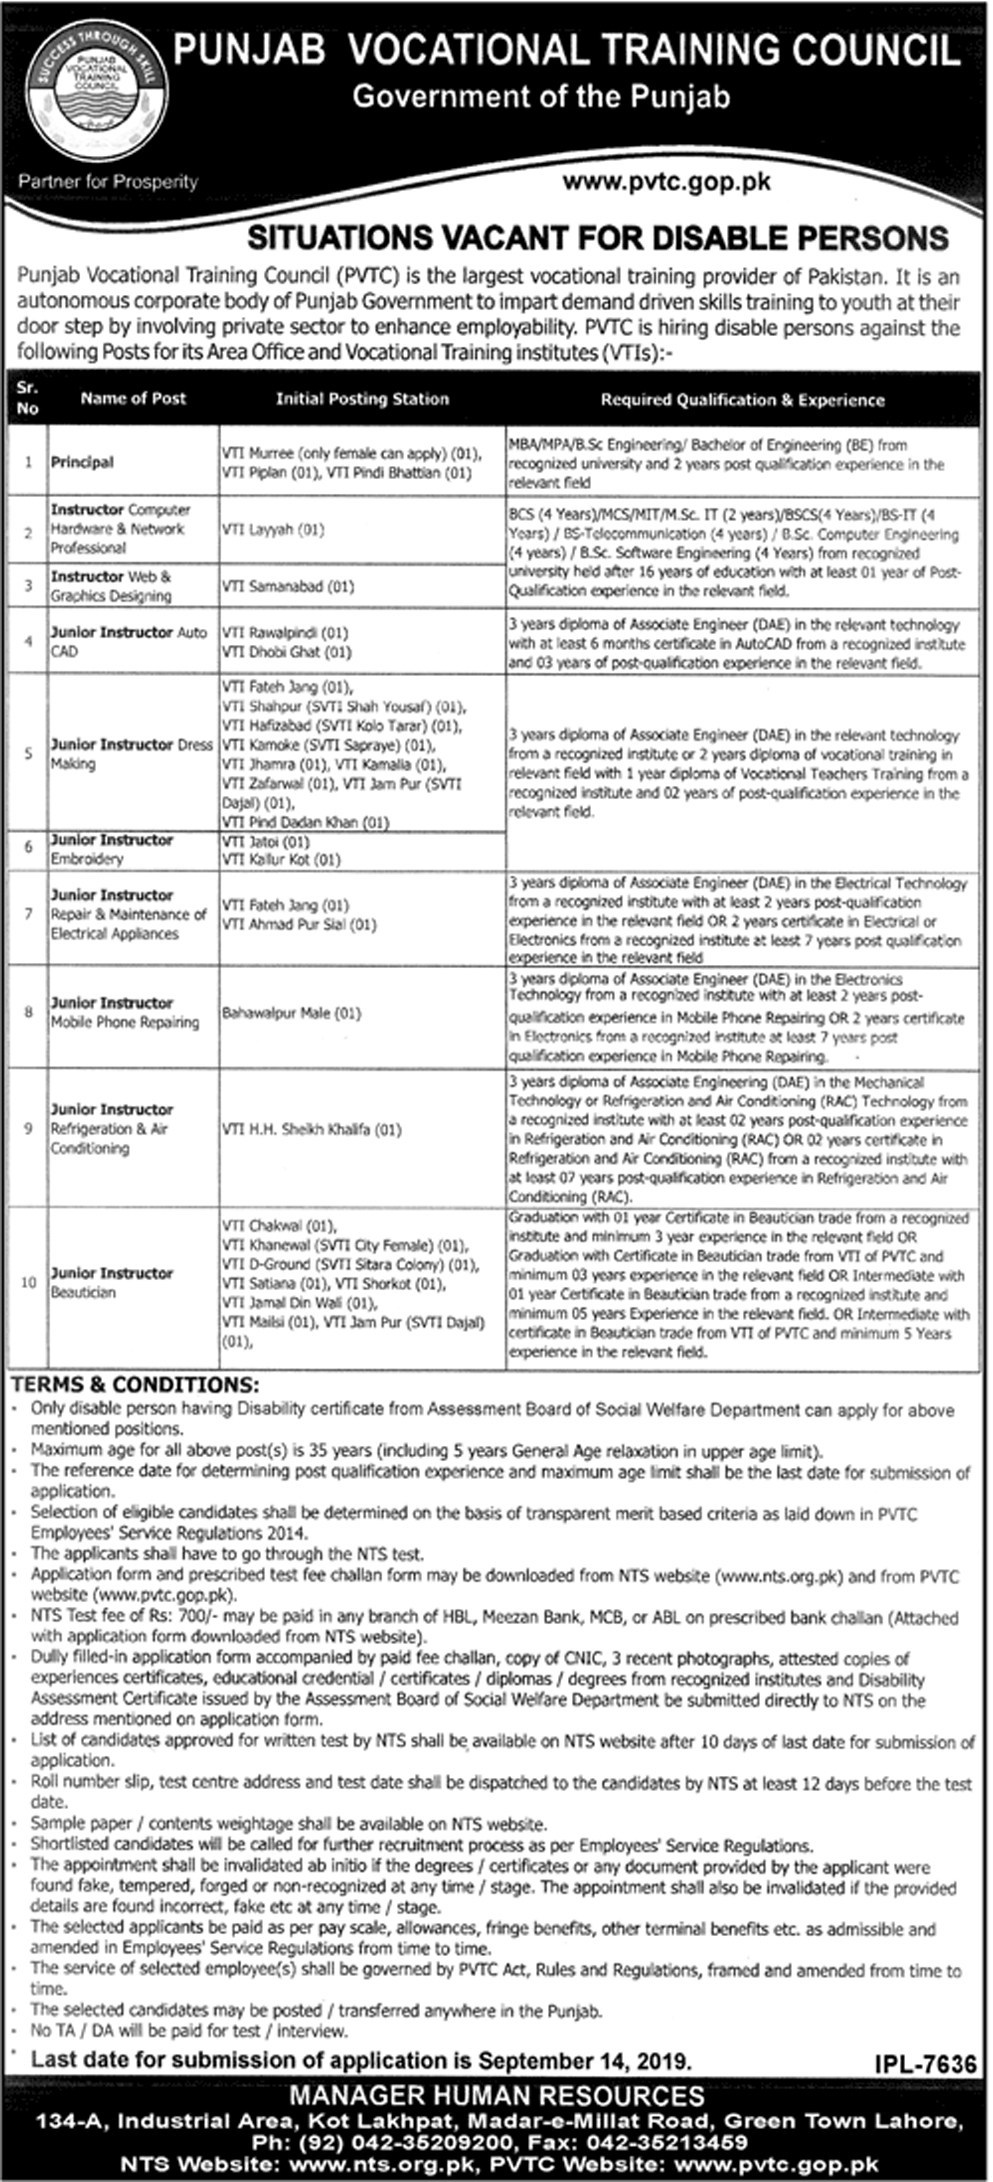 PVTC Punjab Vocational Training Council Jobs Via NTS